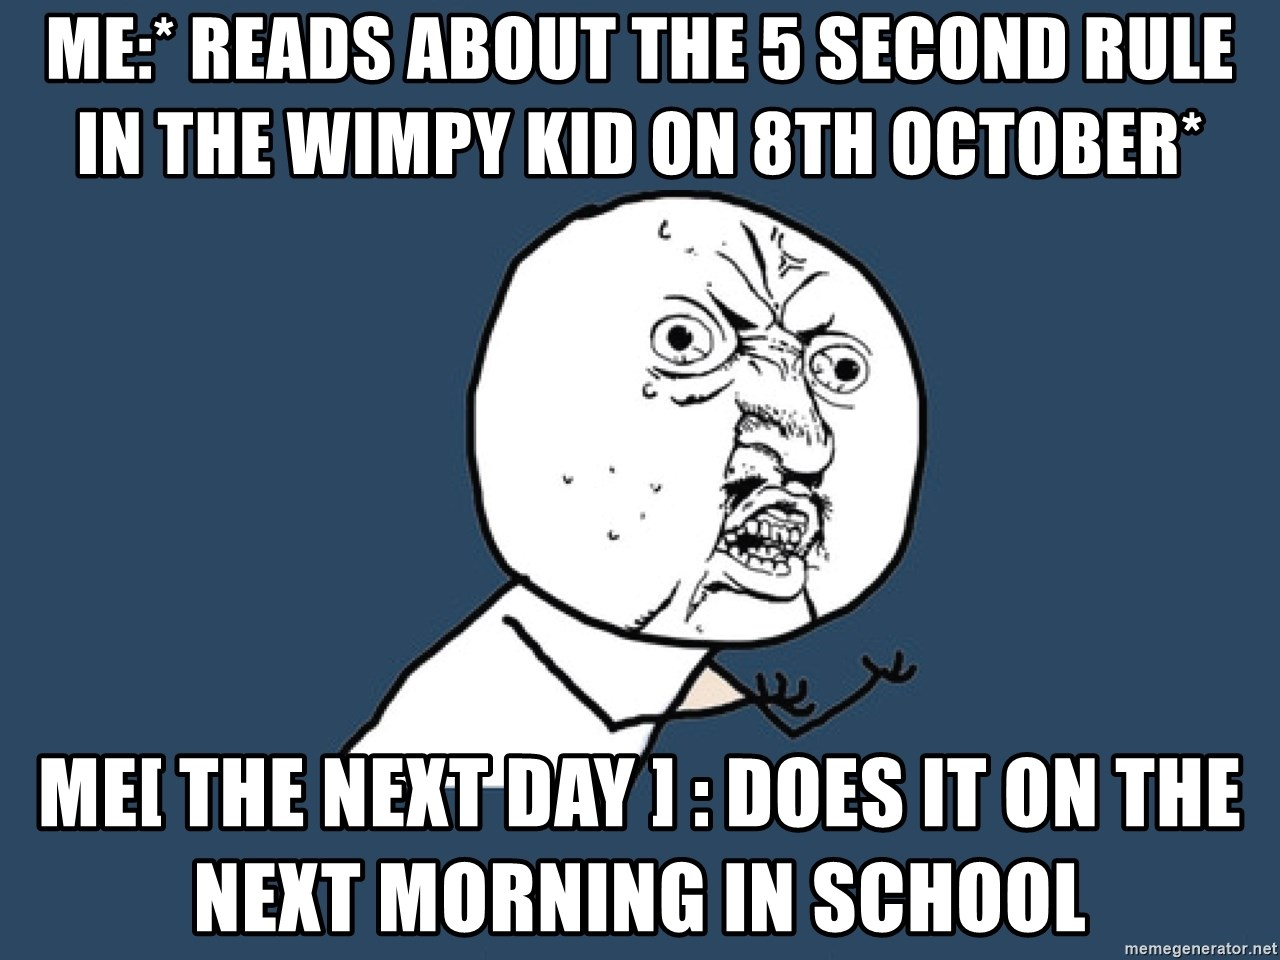 Y U No - Me:* reads about the 5 second rule in the wimpy kid on 8th October* Me[ the next day ] : does it on the next morning in school